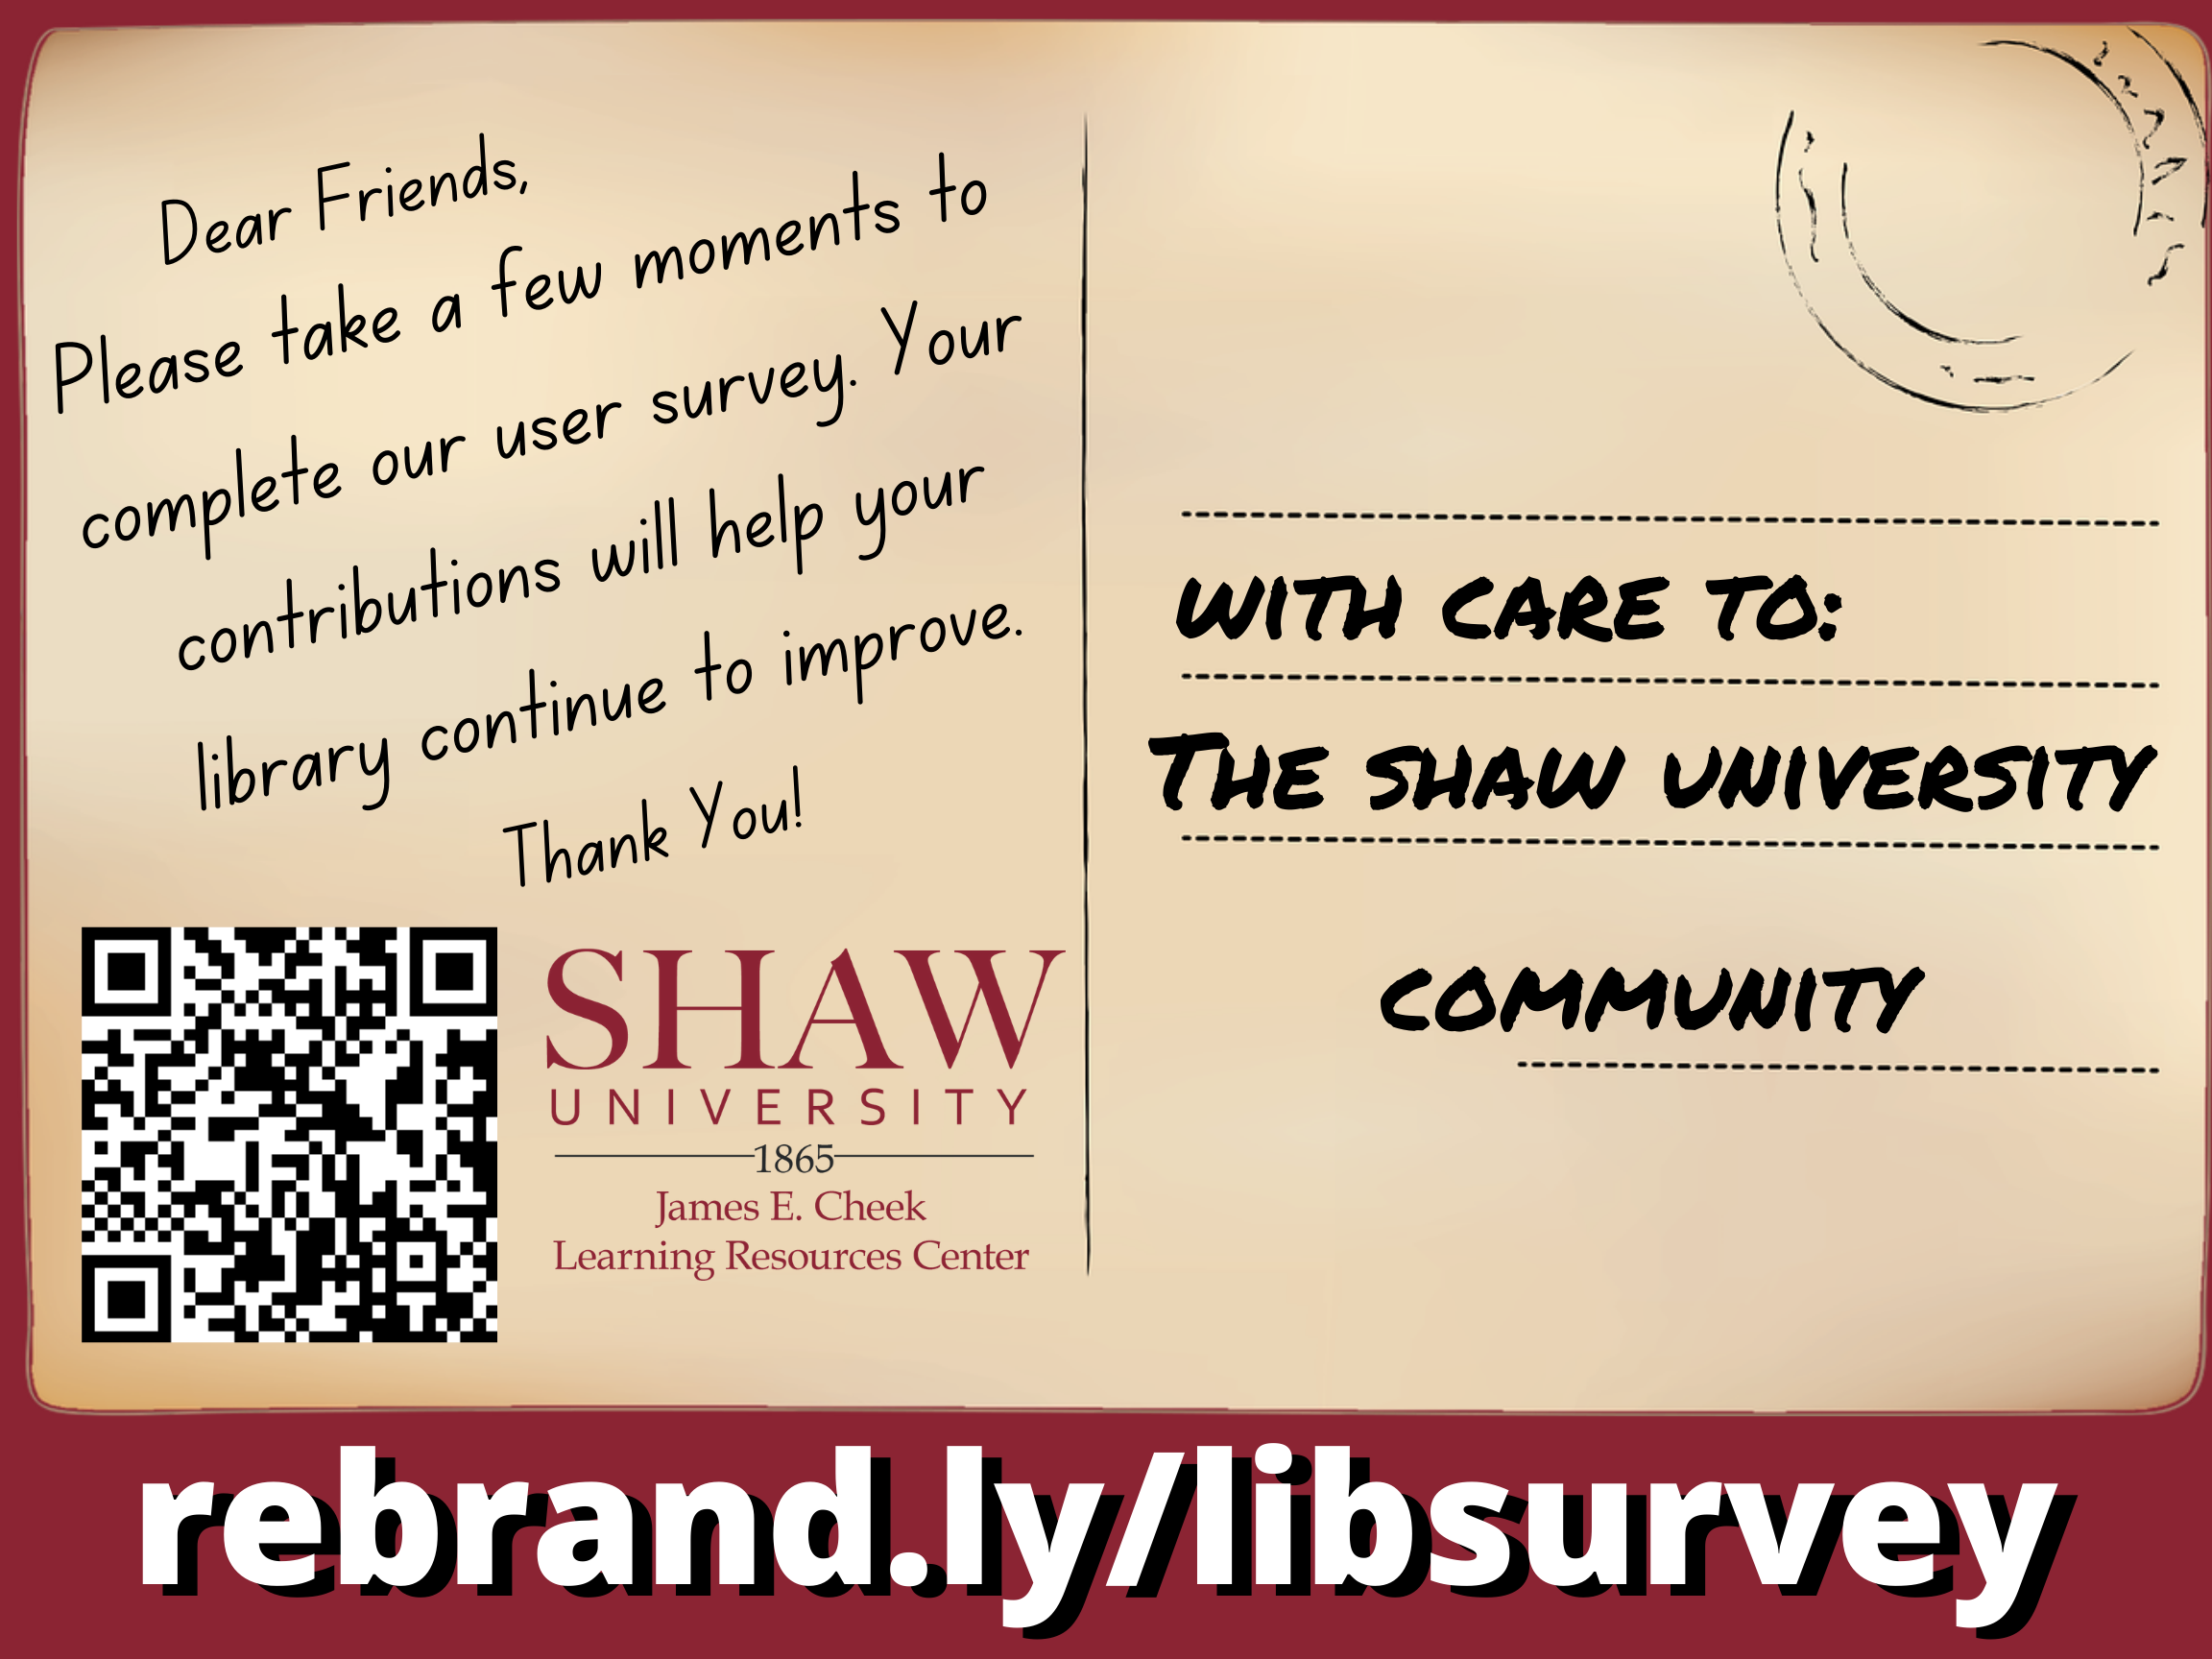 Tan postcard flyer with request for filling out the library user survey